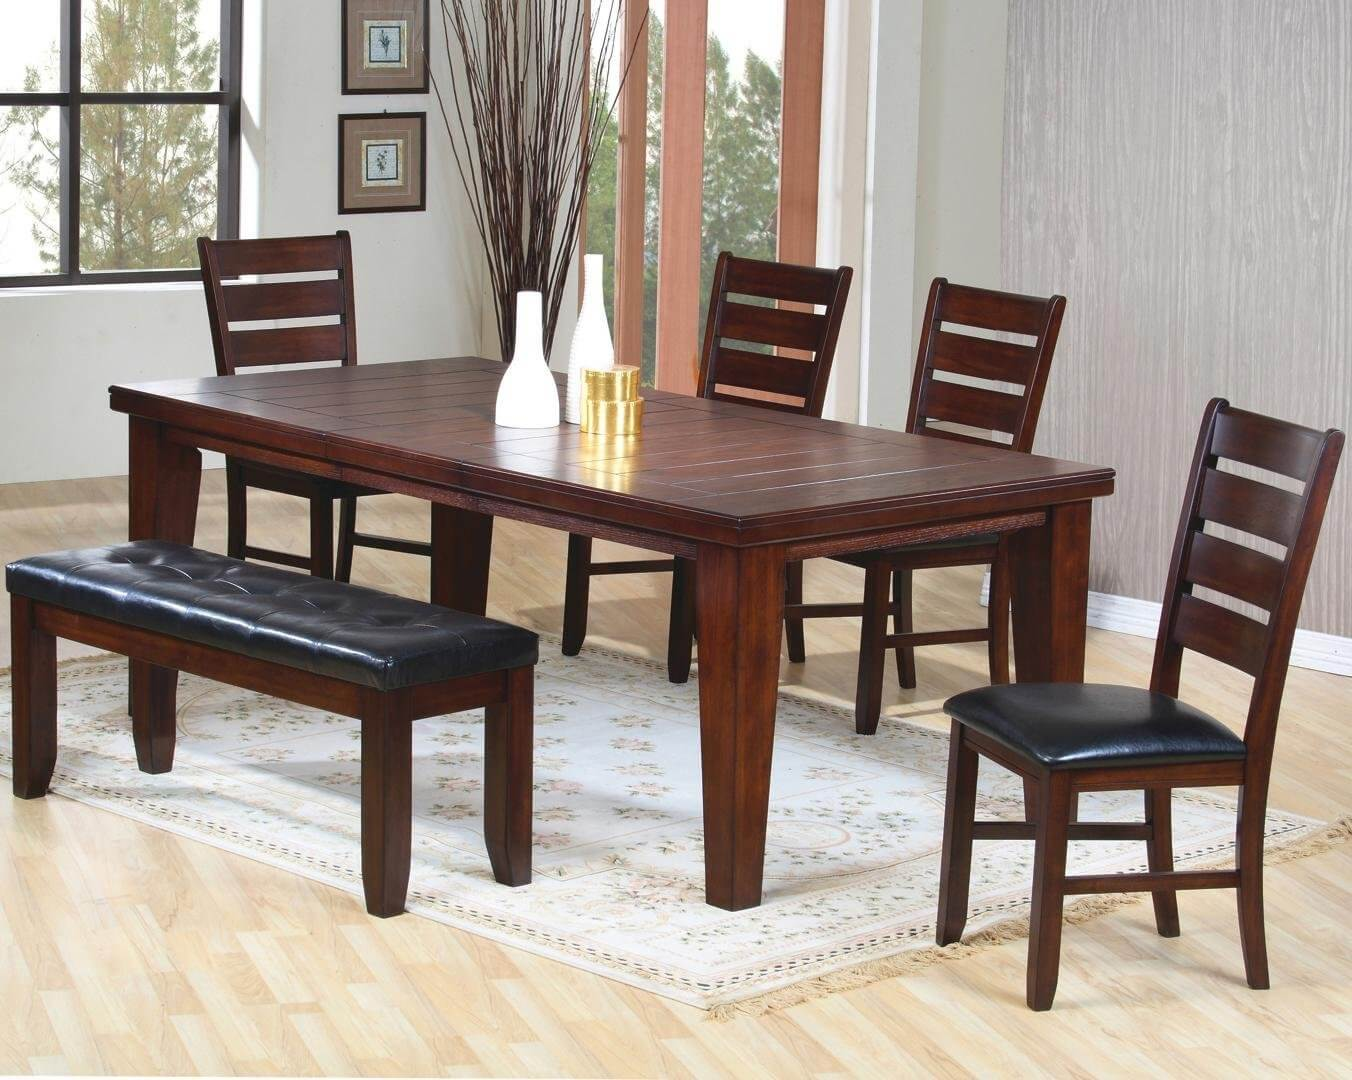 Rooms To Go Kitchen Furniture 26 Big Small Dining Room Sets With Bench Seating